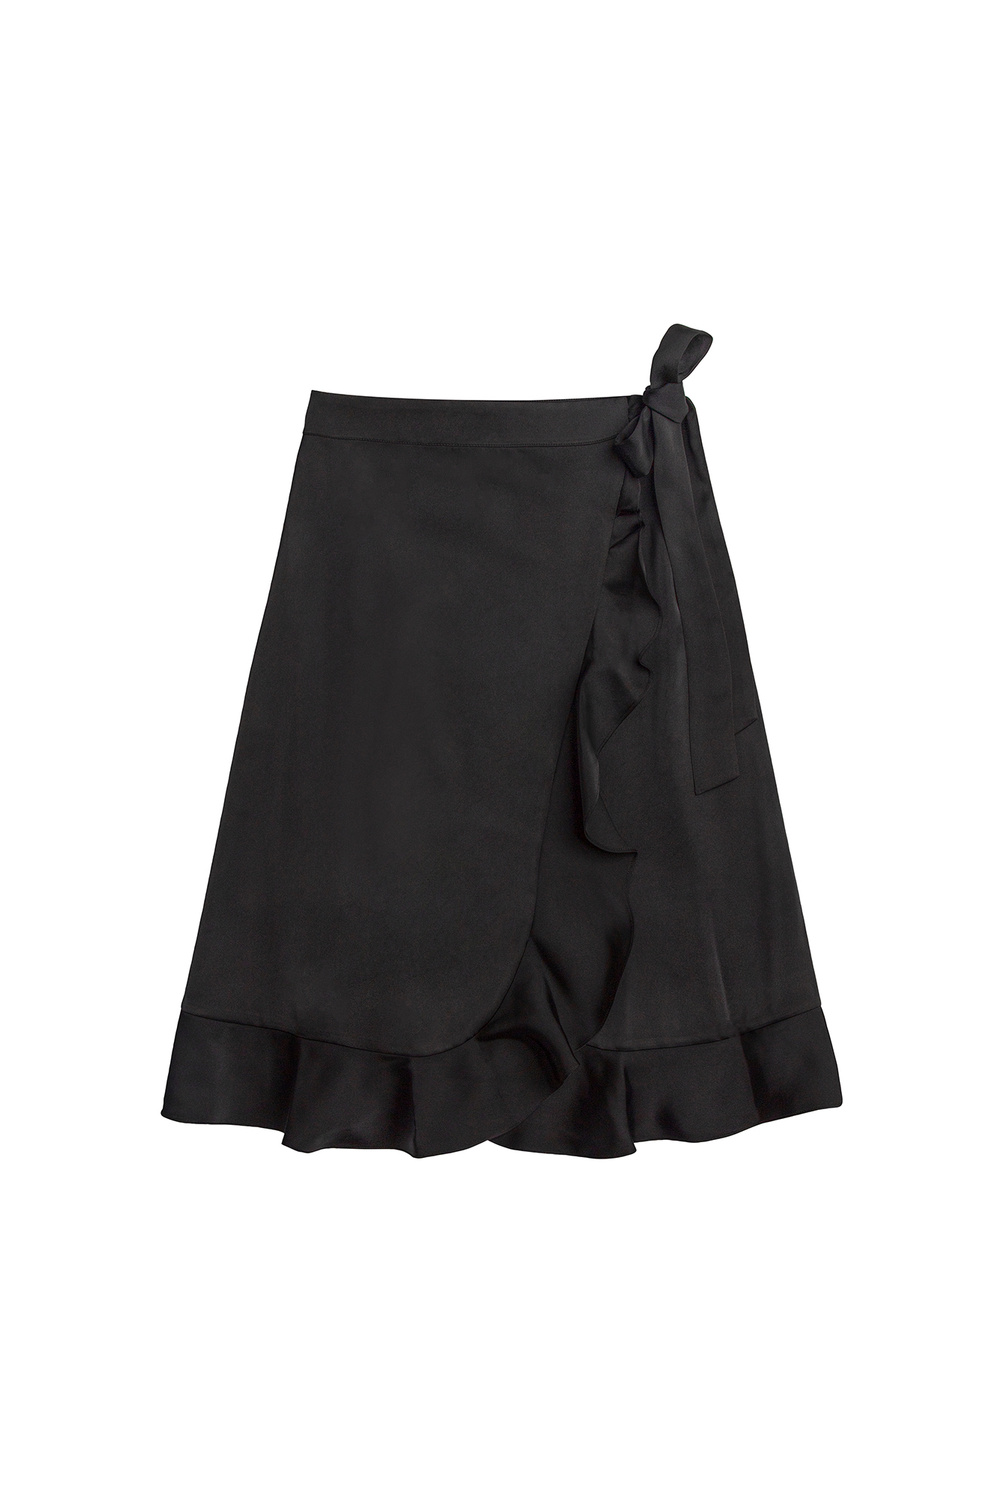 Product image Denise Skirt